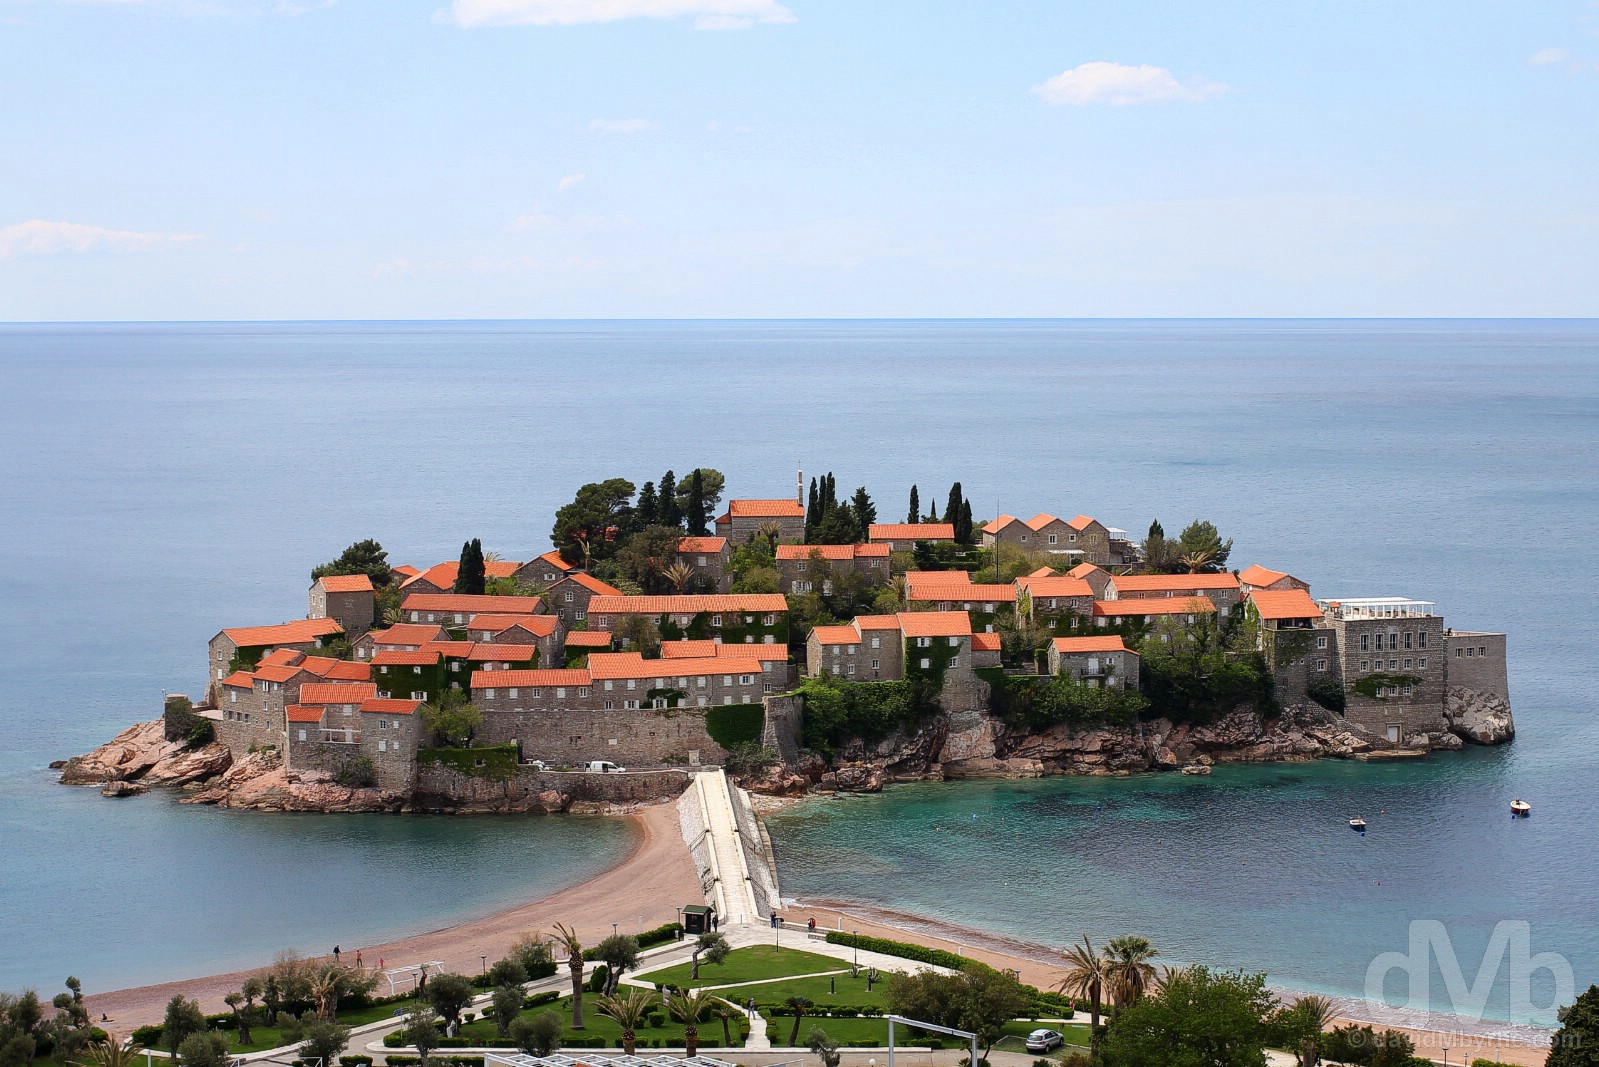 The uber-plush 5-star fortress resort island of Sveti Stefan as seen from the coastal-hugging E80, Budvanska Rivijera, Montenegro. April 21, 2017.